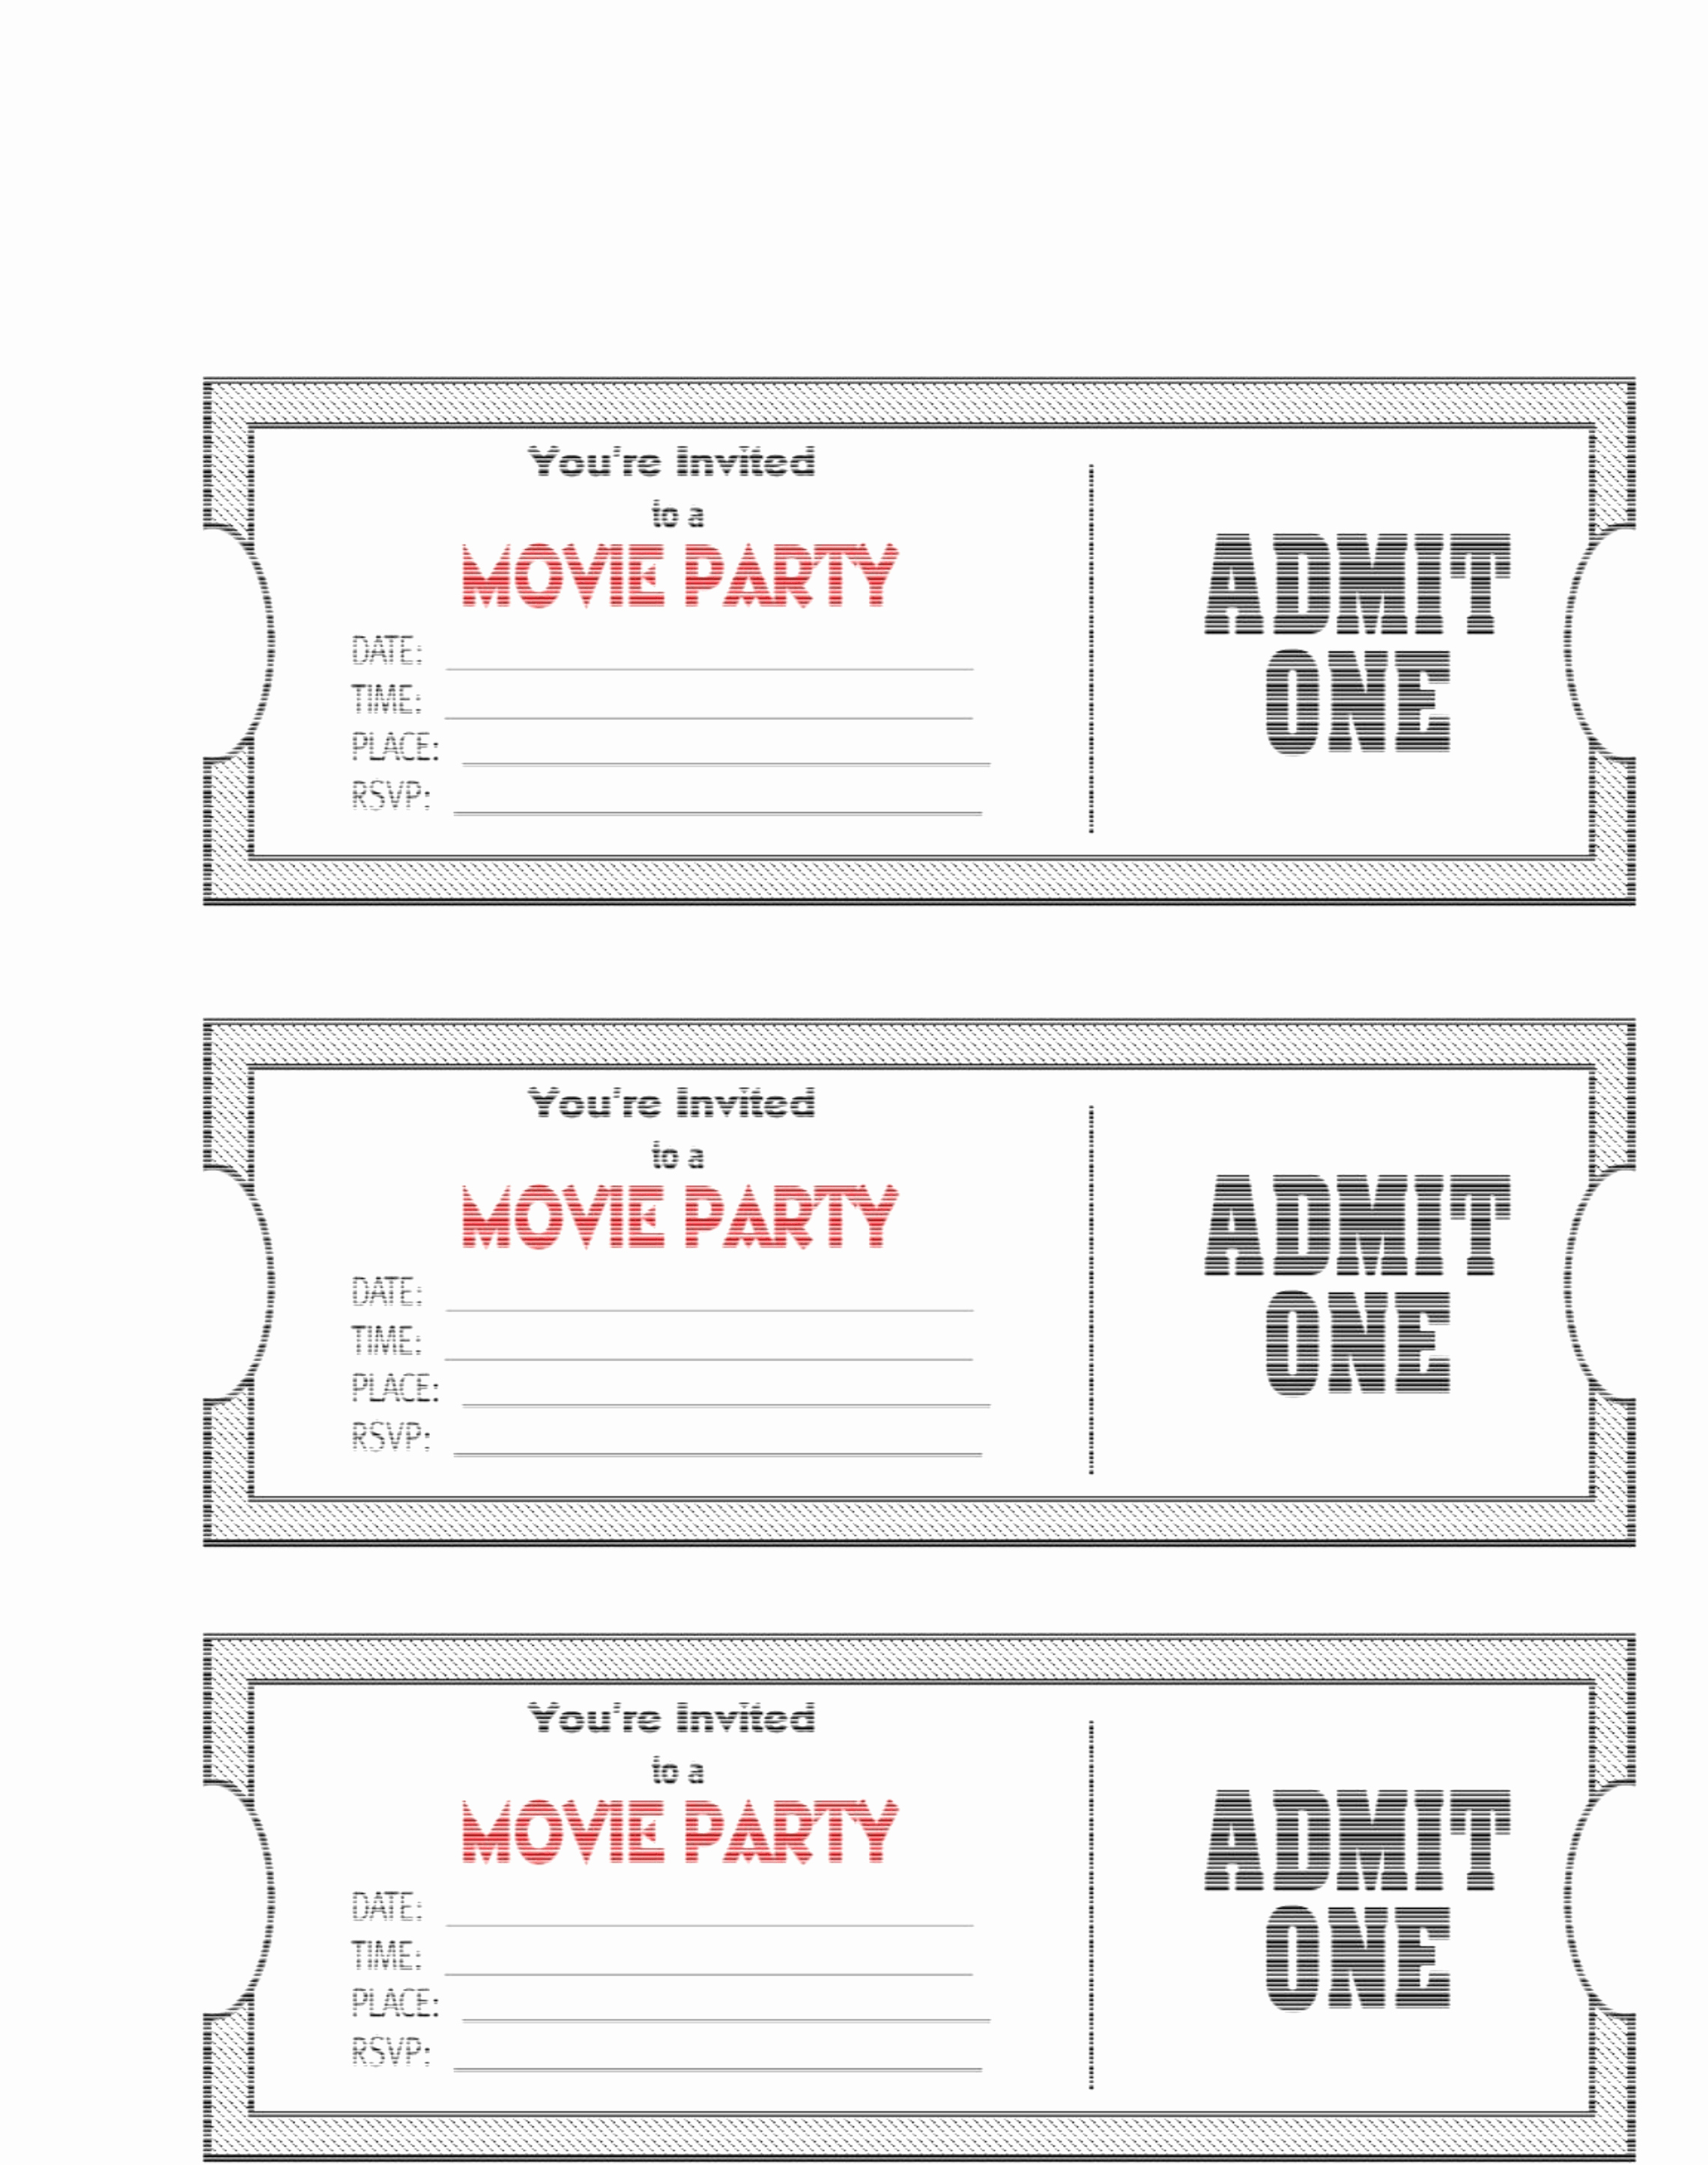 Admit One Movie Ticket Template New Free Printable Movie Ticket Invitations